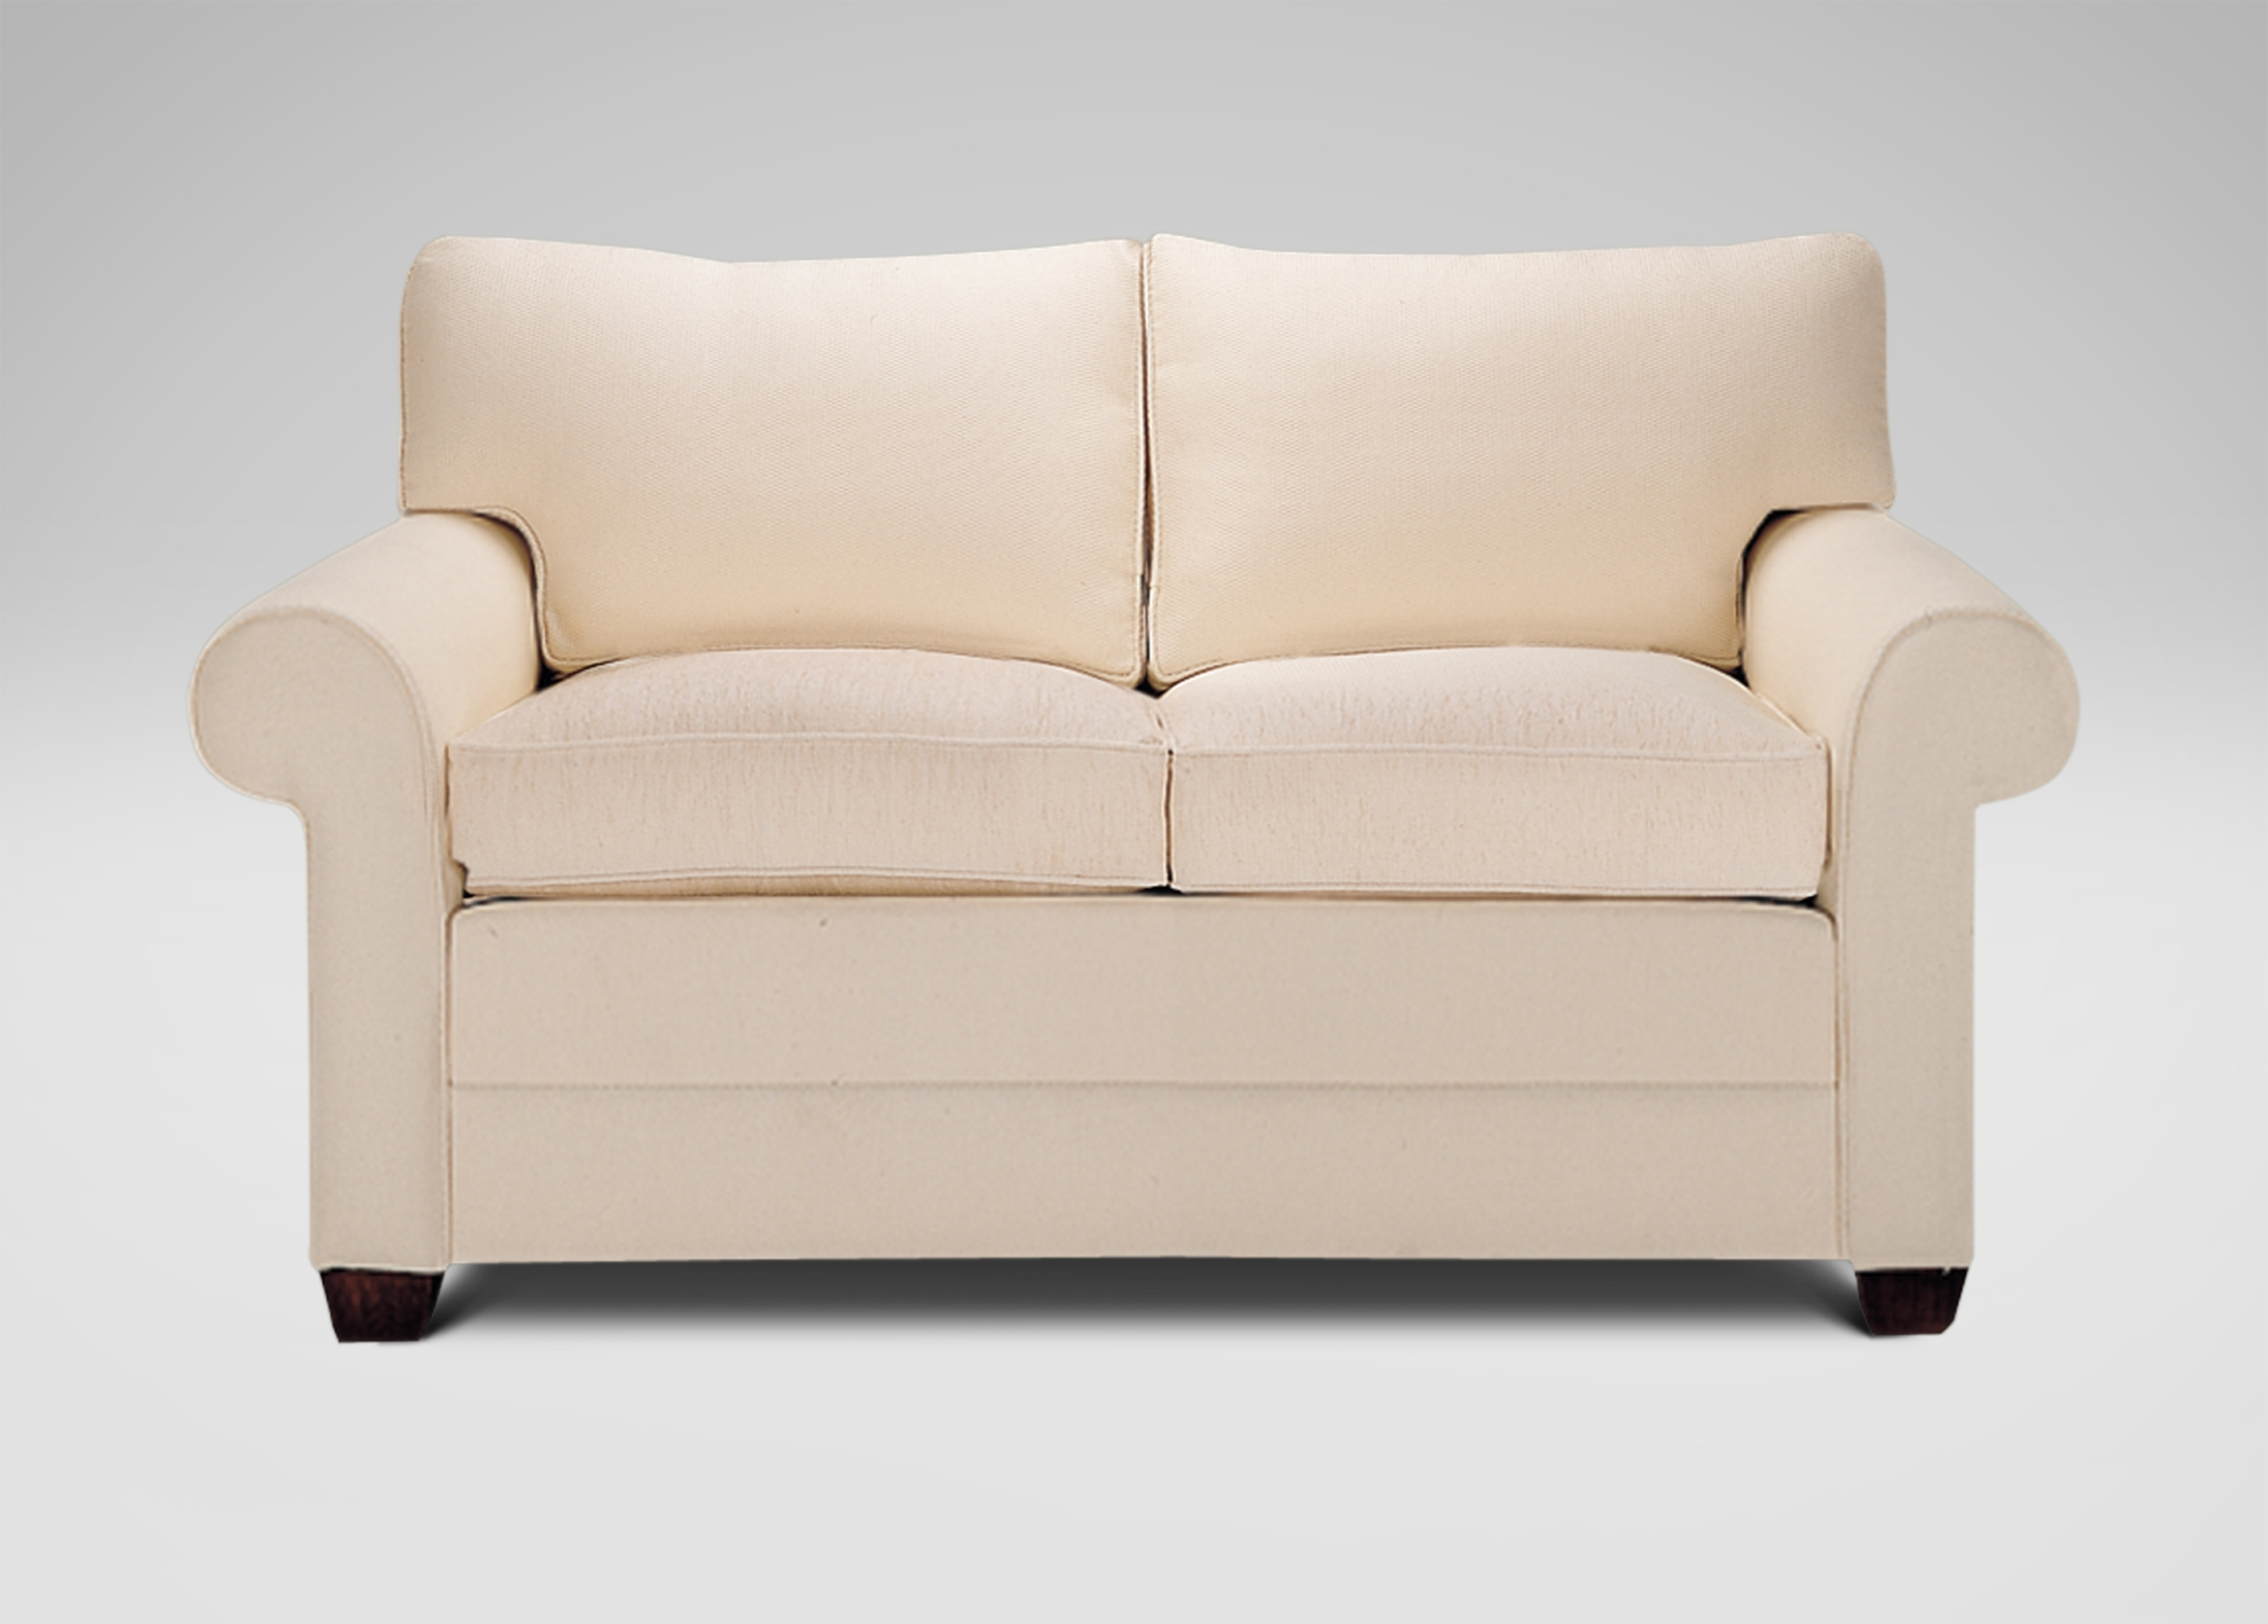 Most Up To Date Bennett Roll Arm Loveseat – Ethan Allen In Ethan Allen Sofas And Chairs (View 14 of 20)